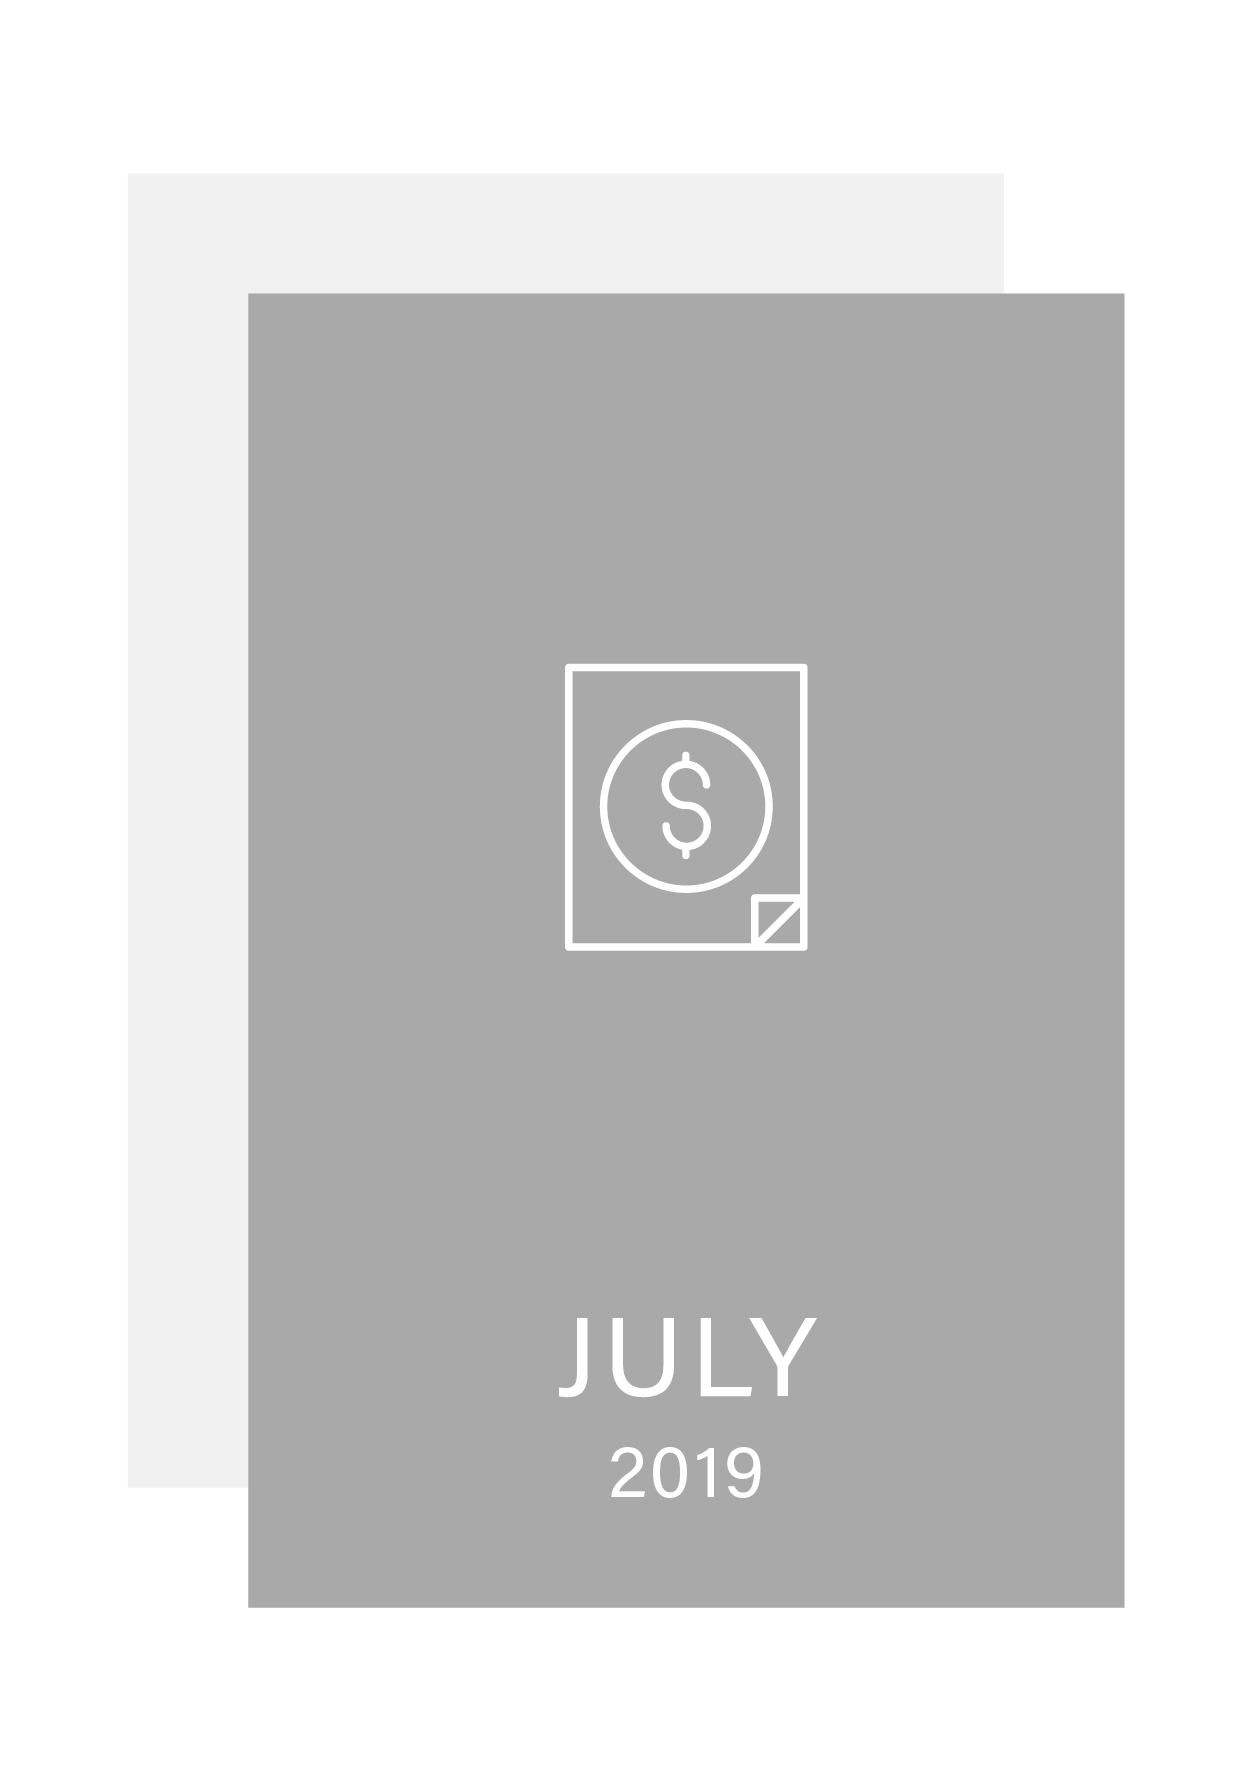 Finestone_Partners_Fiduciary_Insights_Newsletter_Image_July_2019.png